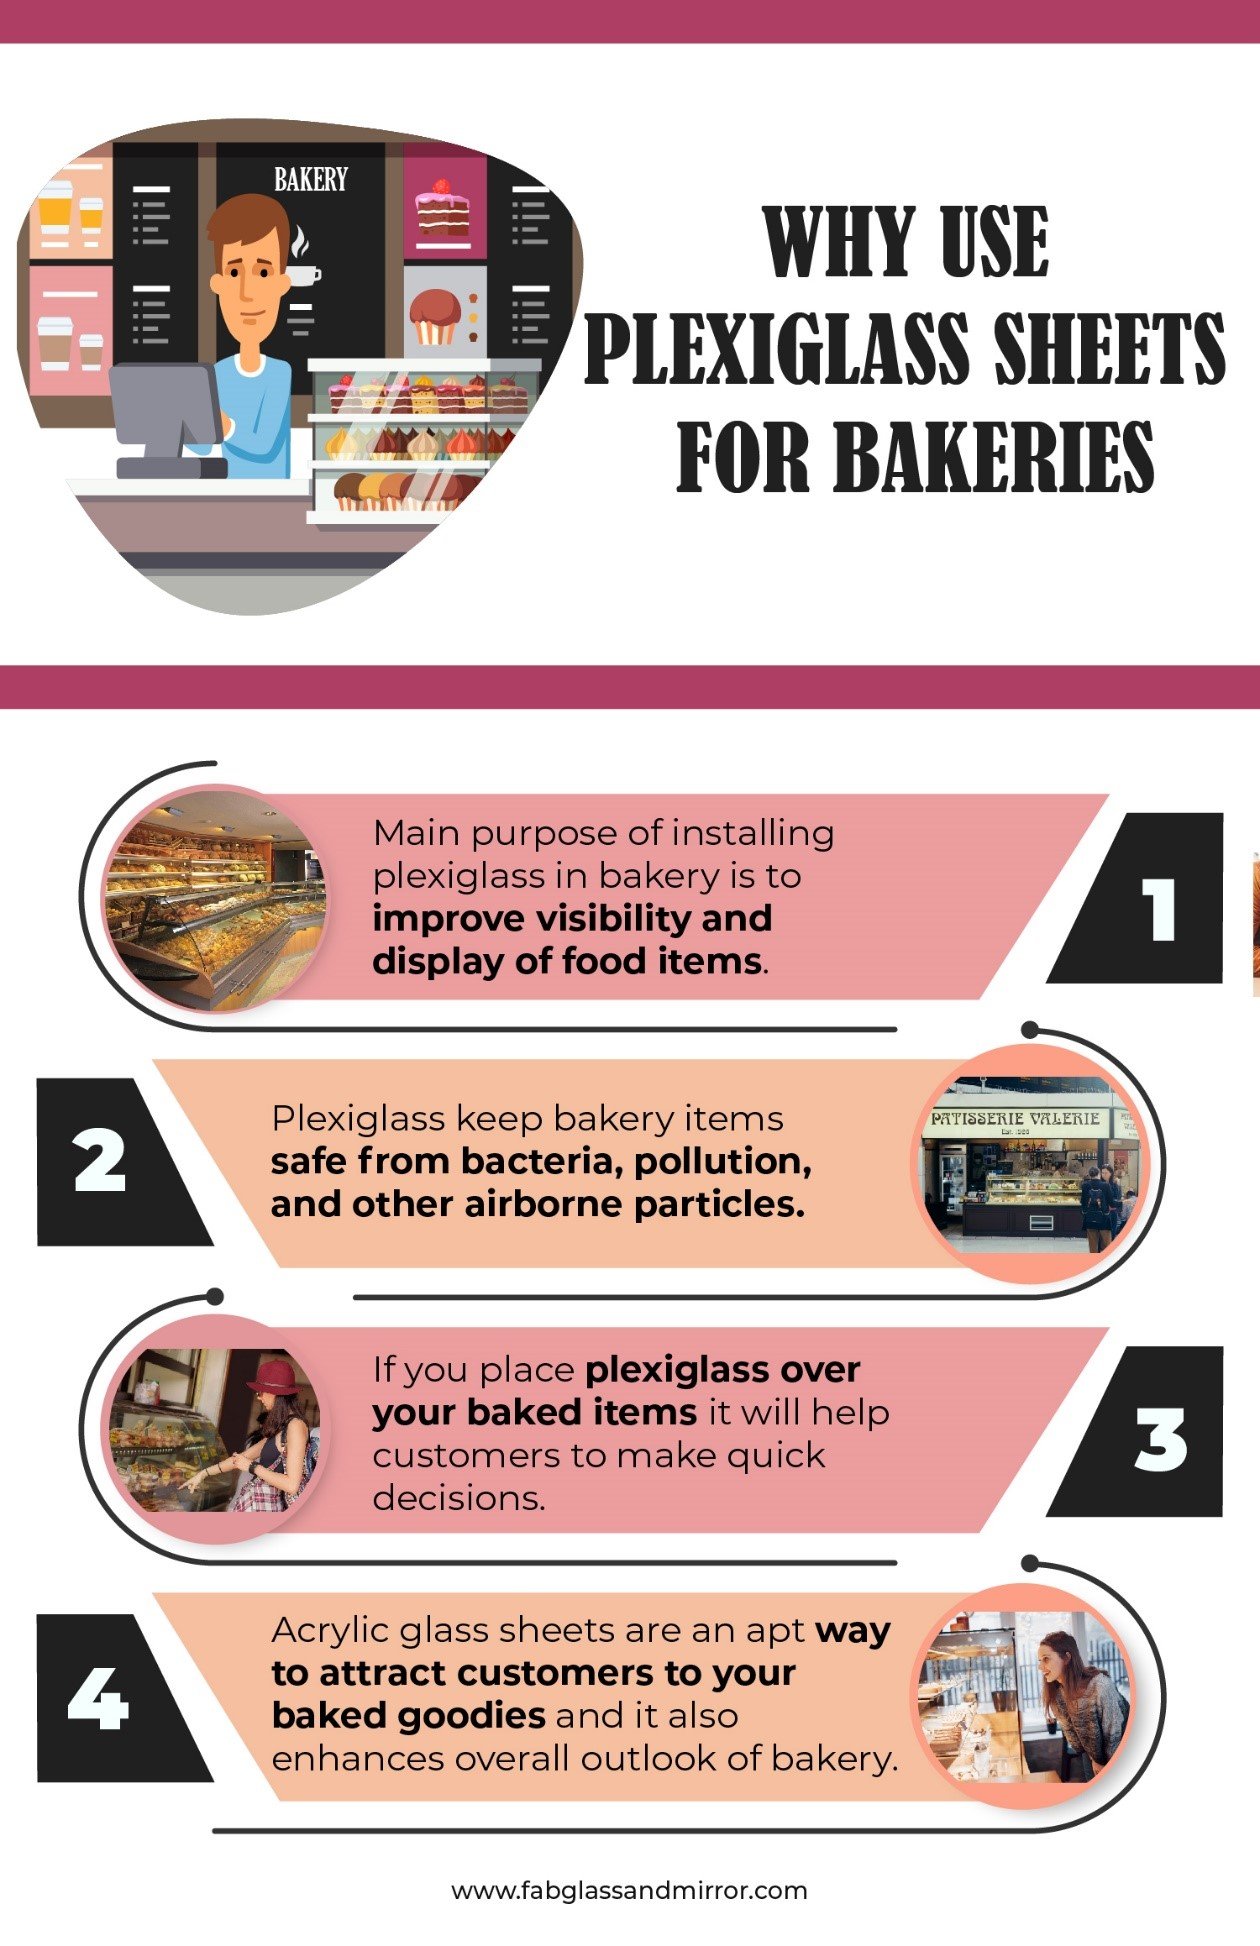 image - Why Use Curved Plexiglass Sheets in Bakeries